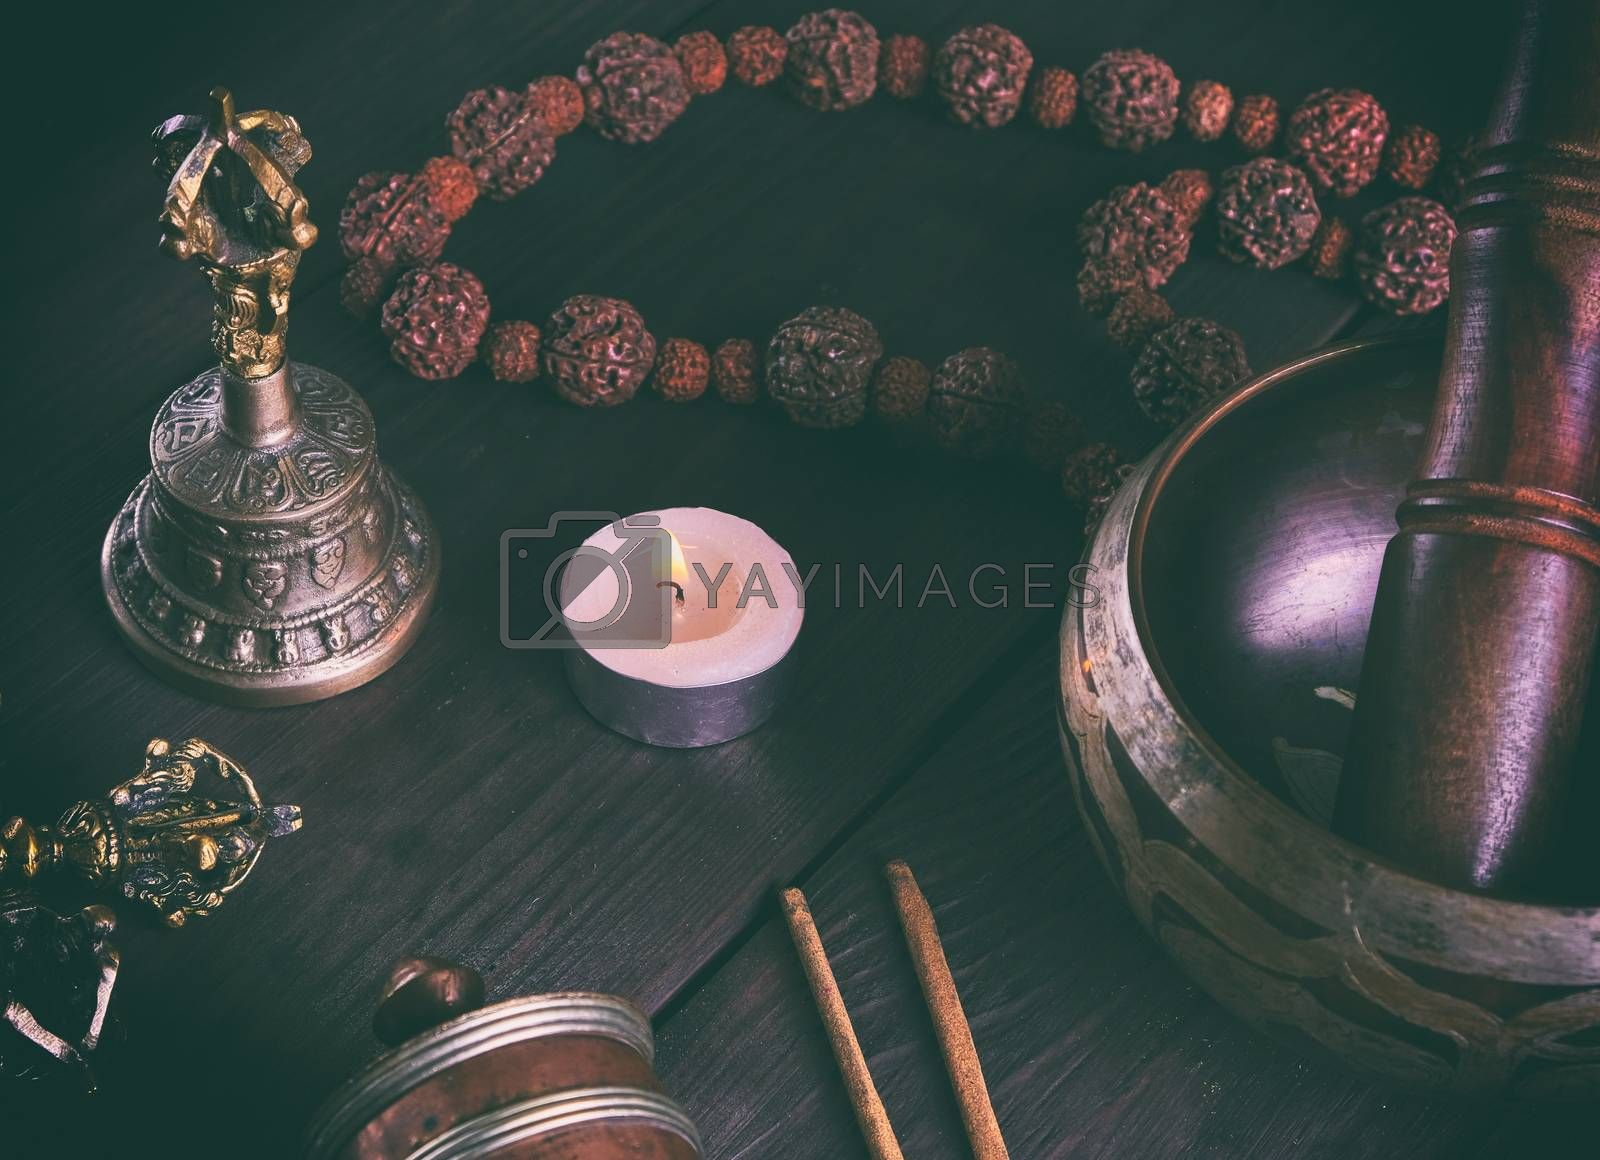 Tibetan religious objects for meditation and alternative medicin by ndanko